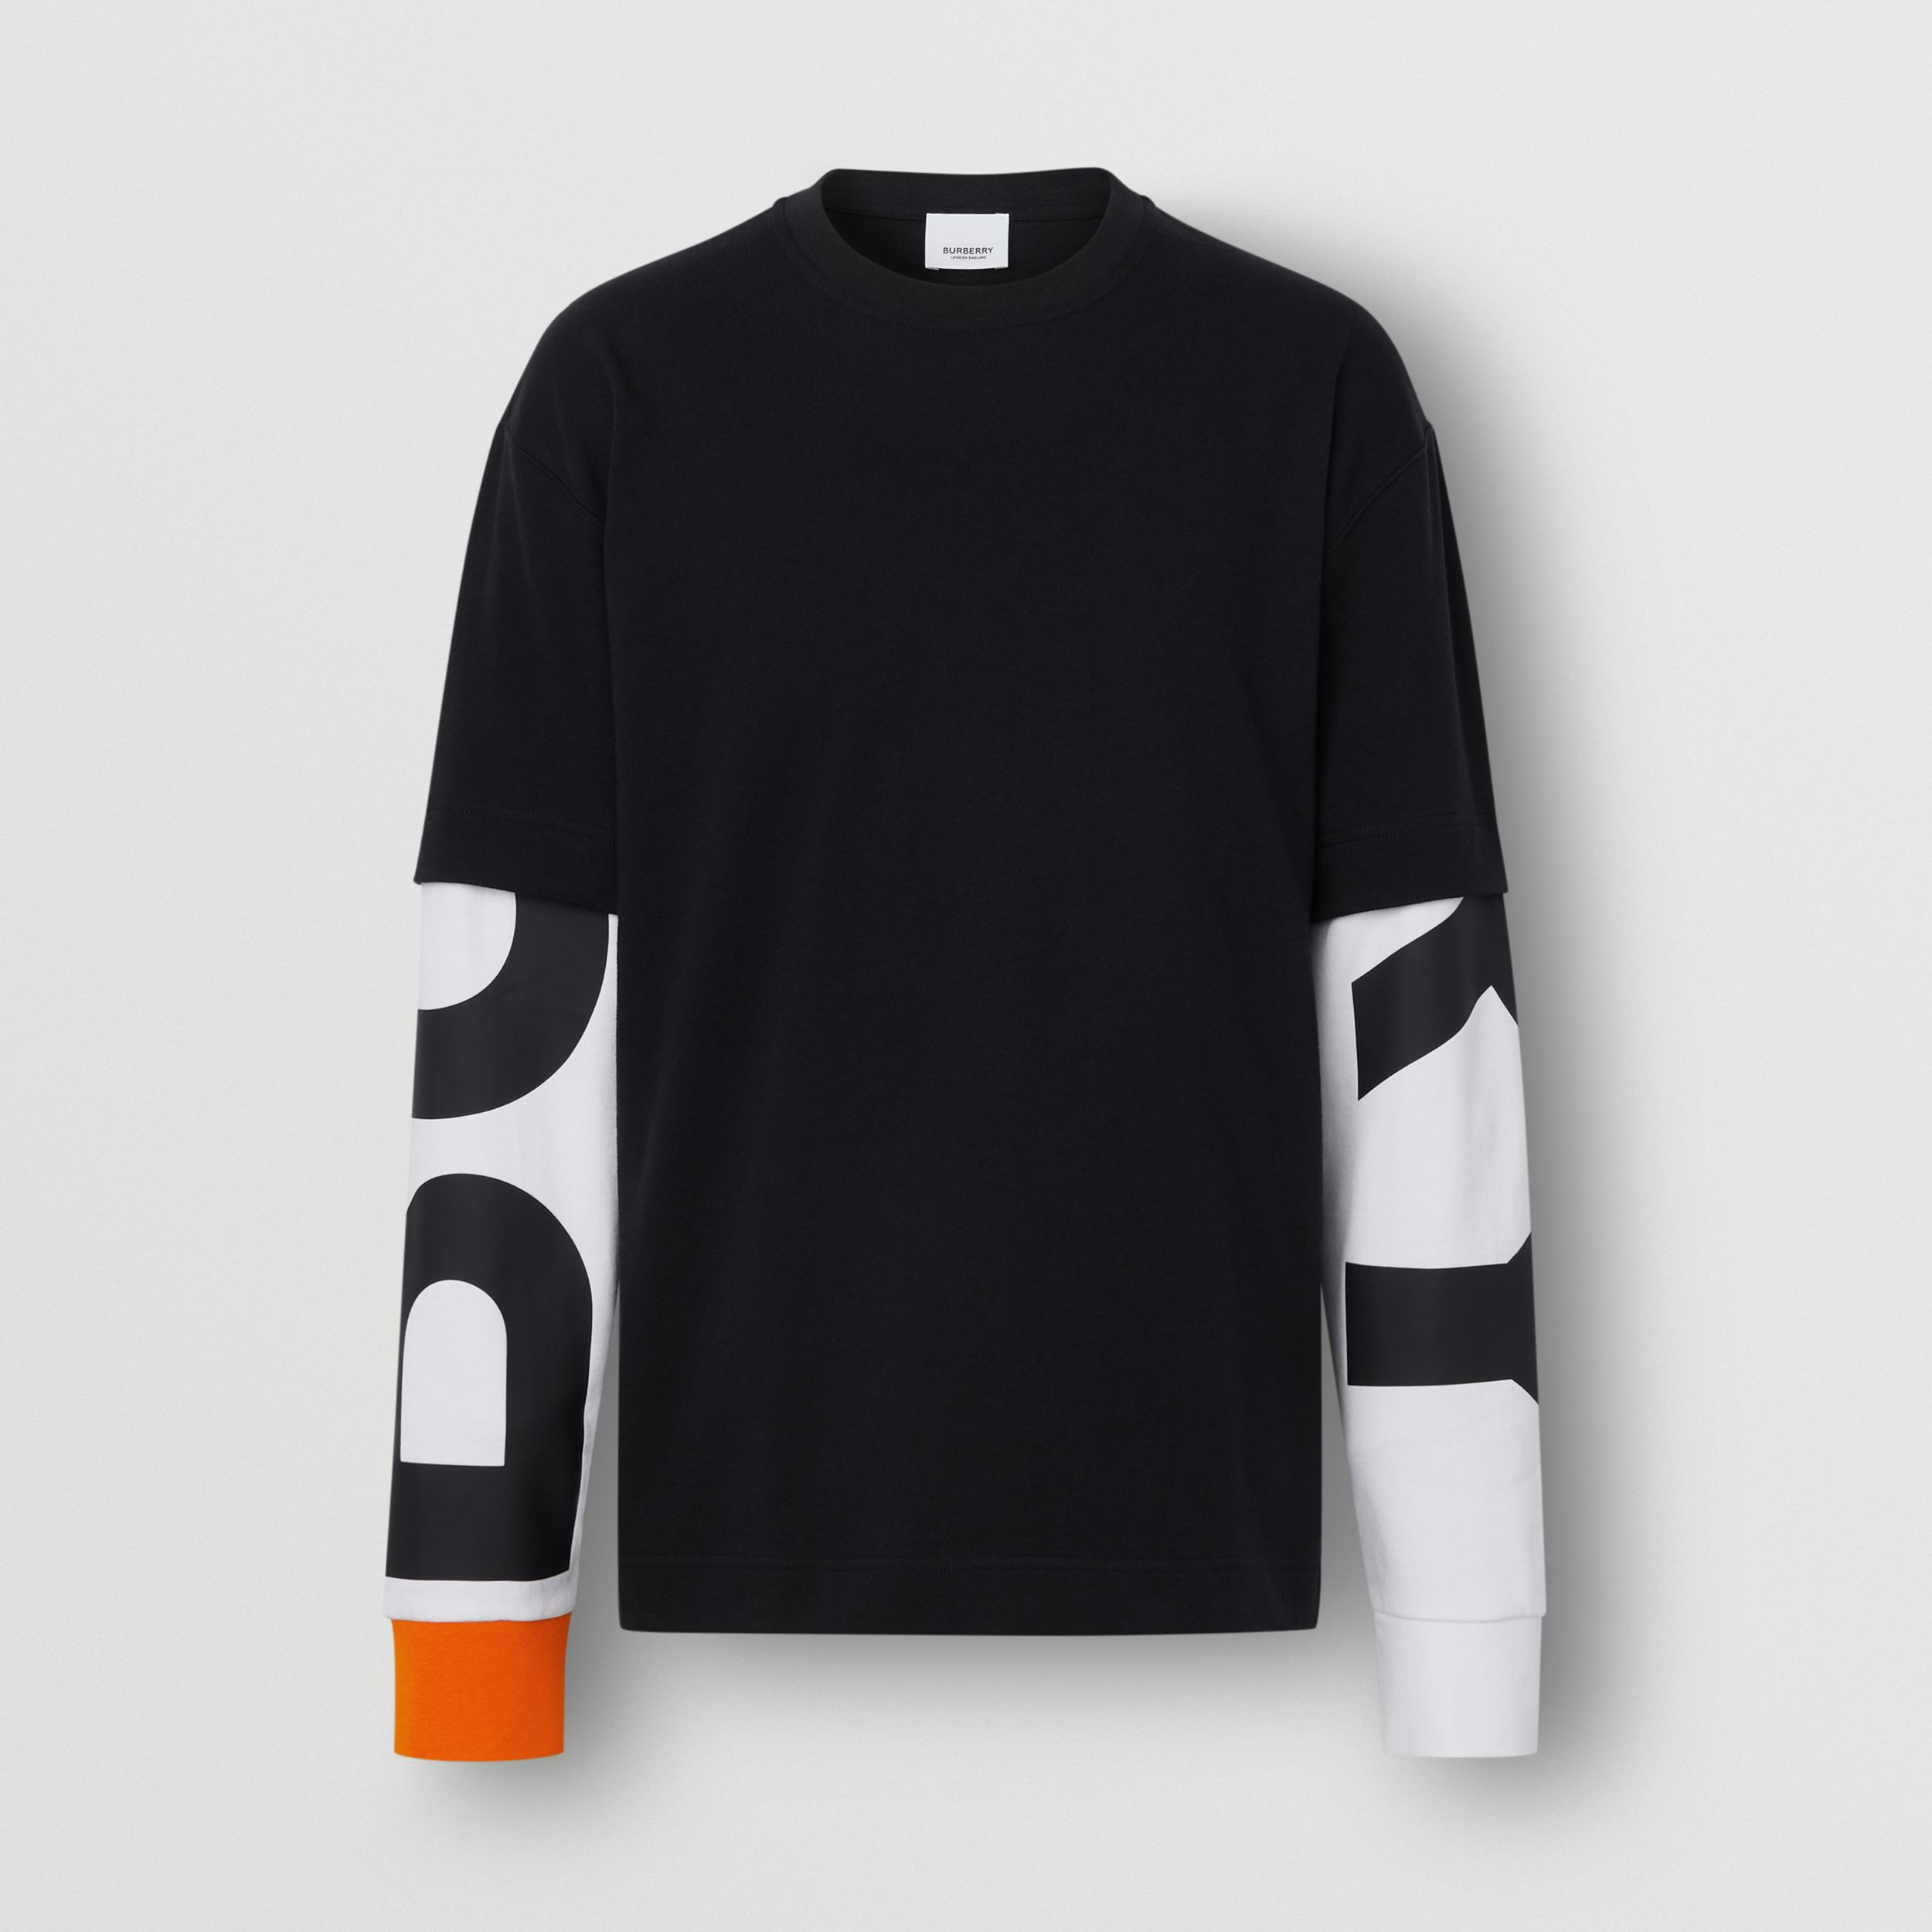 Logo Print Sleeve Cotton T-shirt in Black - Men | Burberry - 4